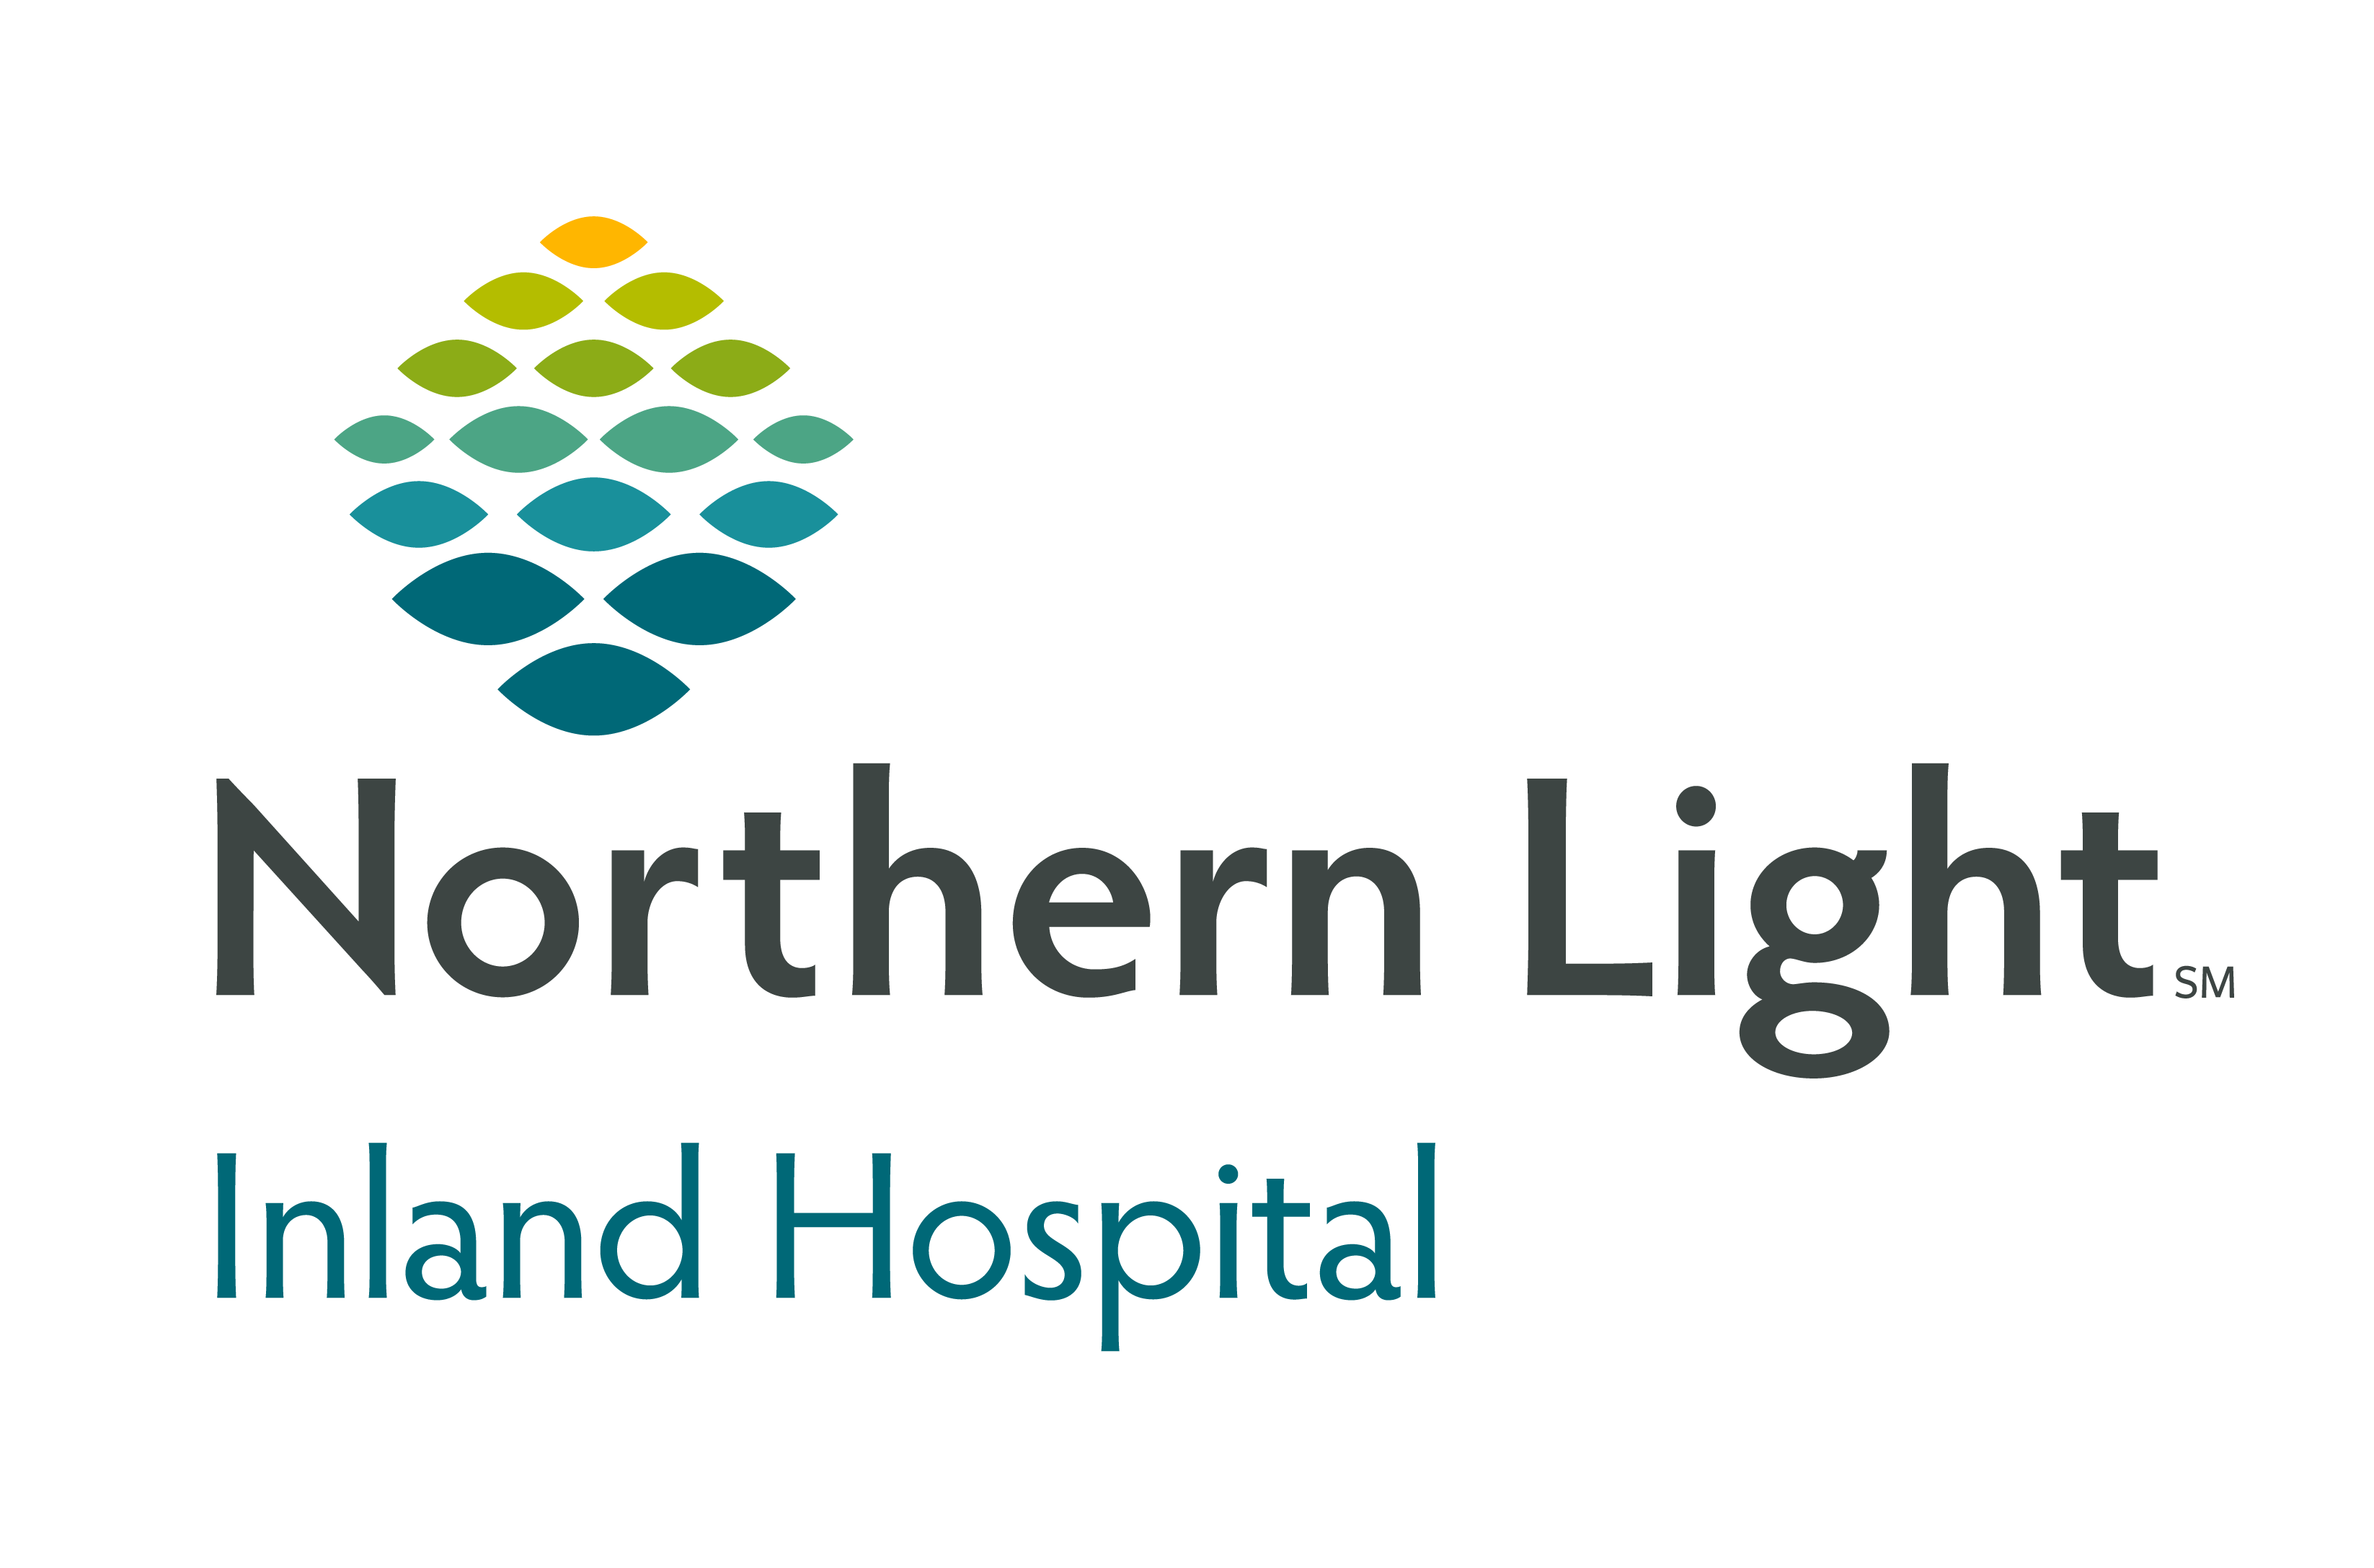 Primary Care Physician/Long Term Care Medical Director in Maine - Northern Light Inland Hospital